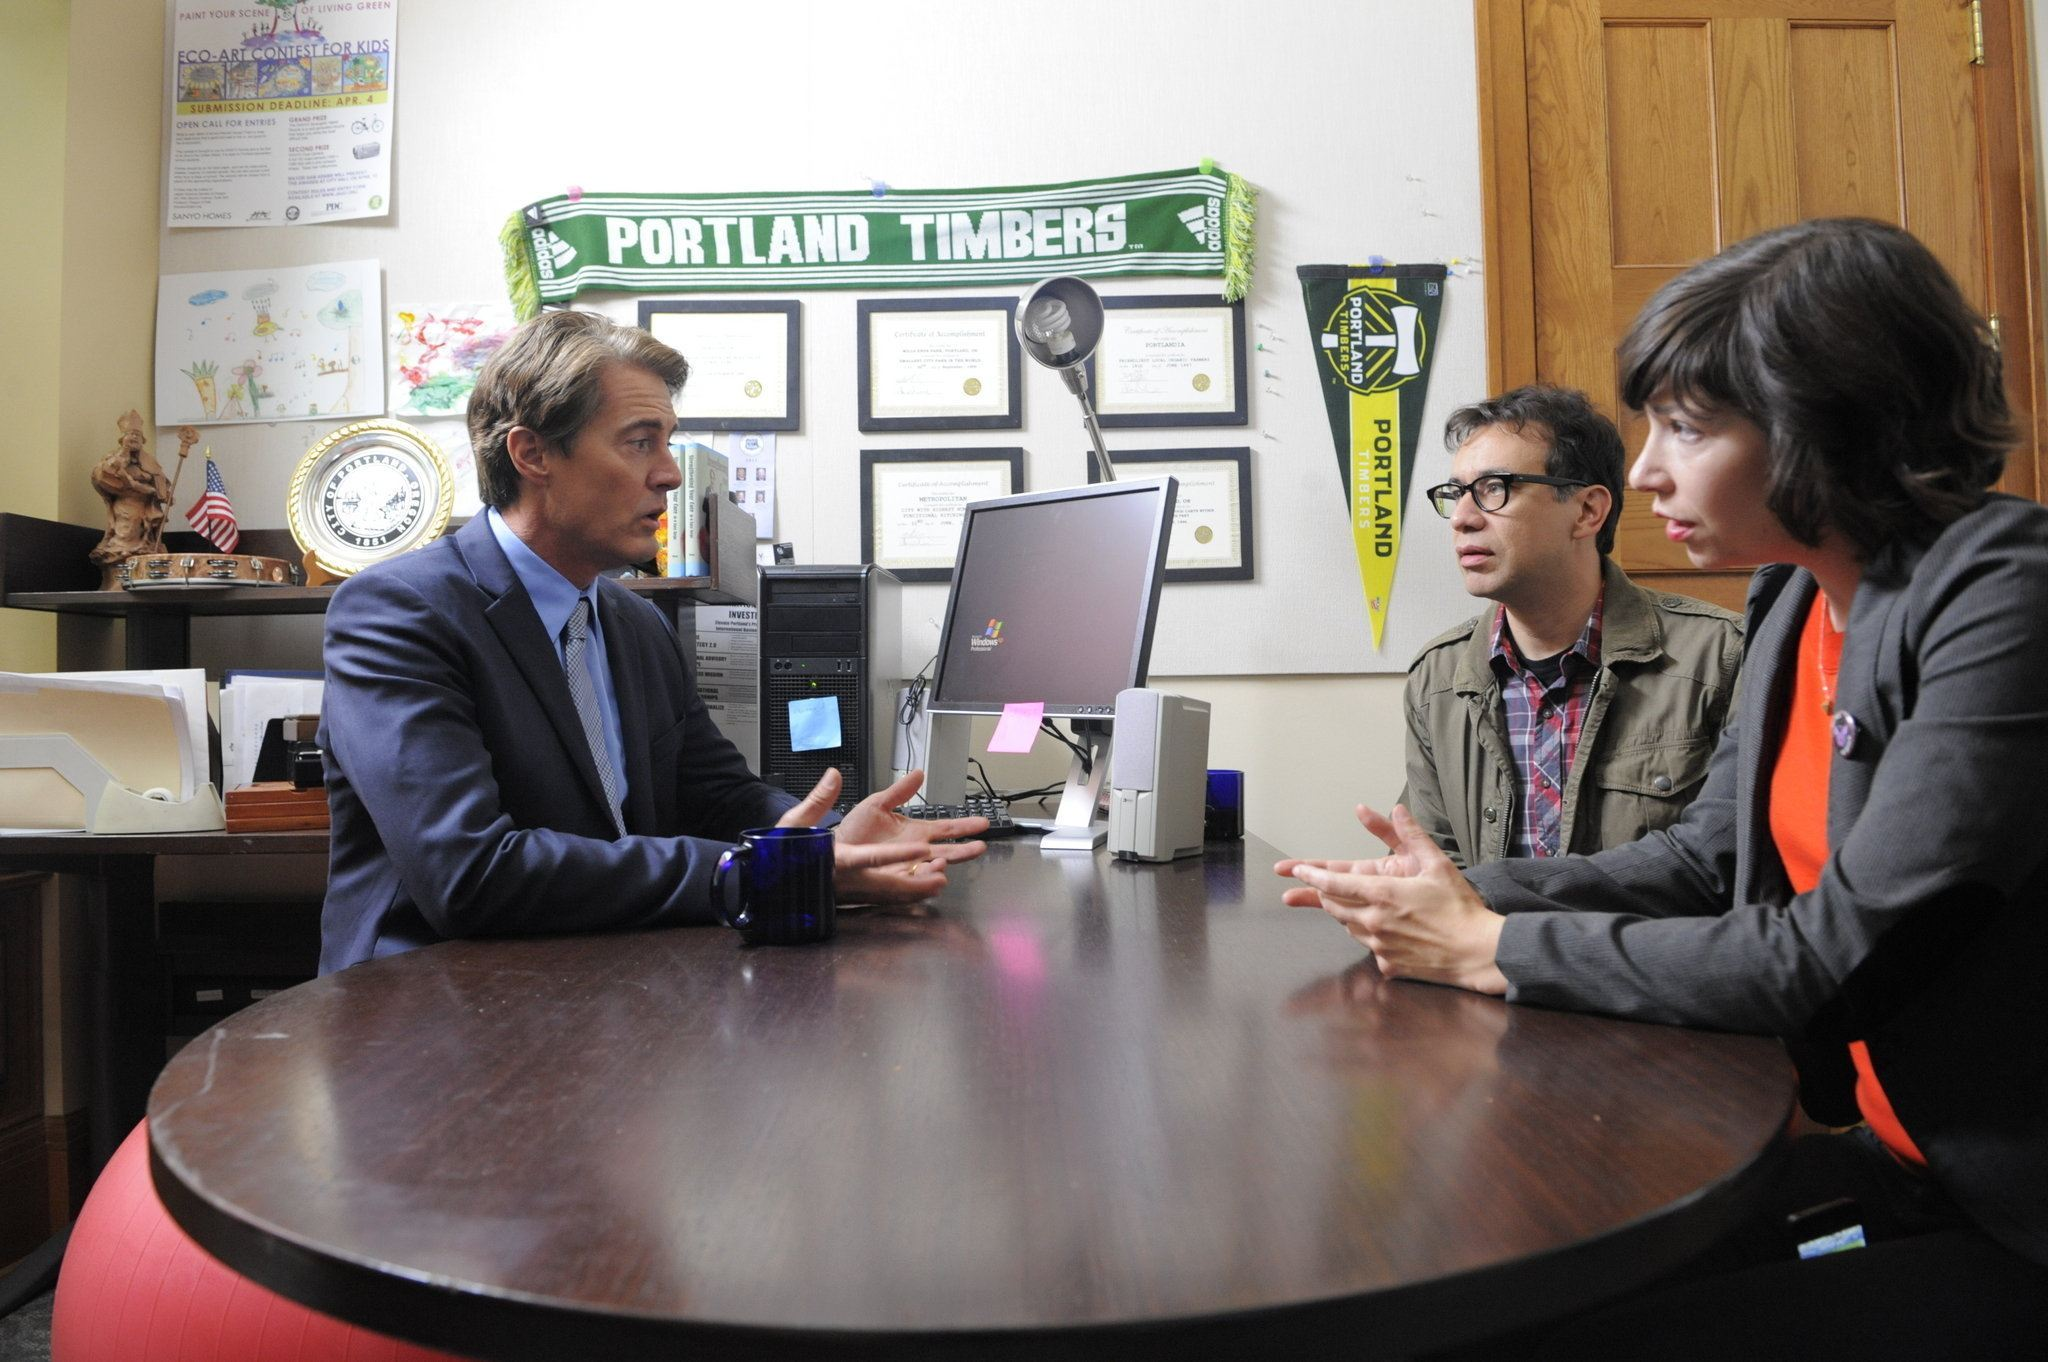 Two fictional Portland residents meet with their fictional mayor on 'Portlandia'